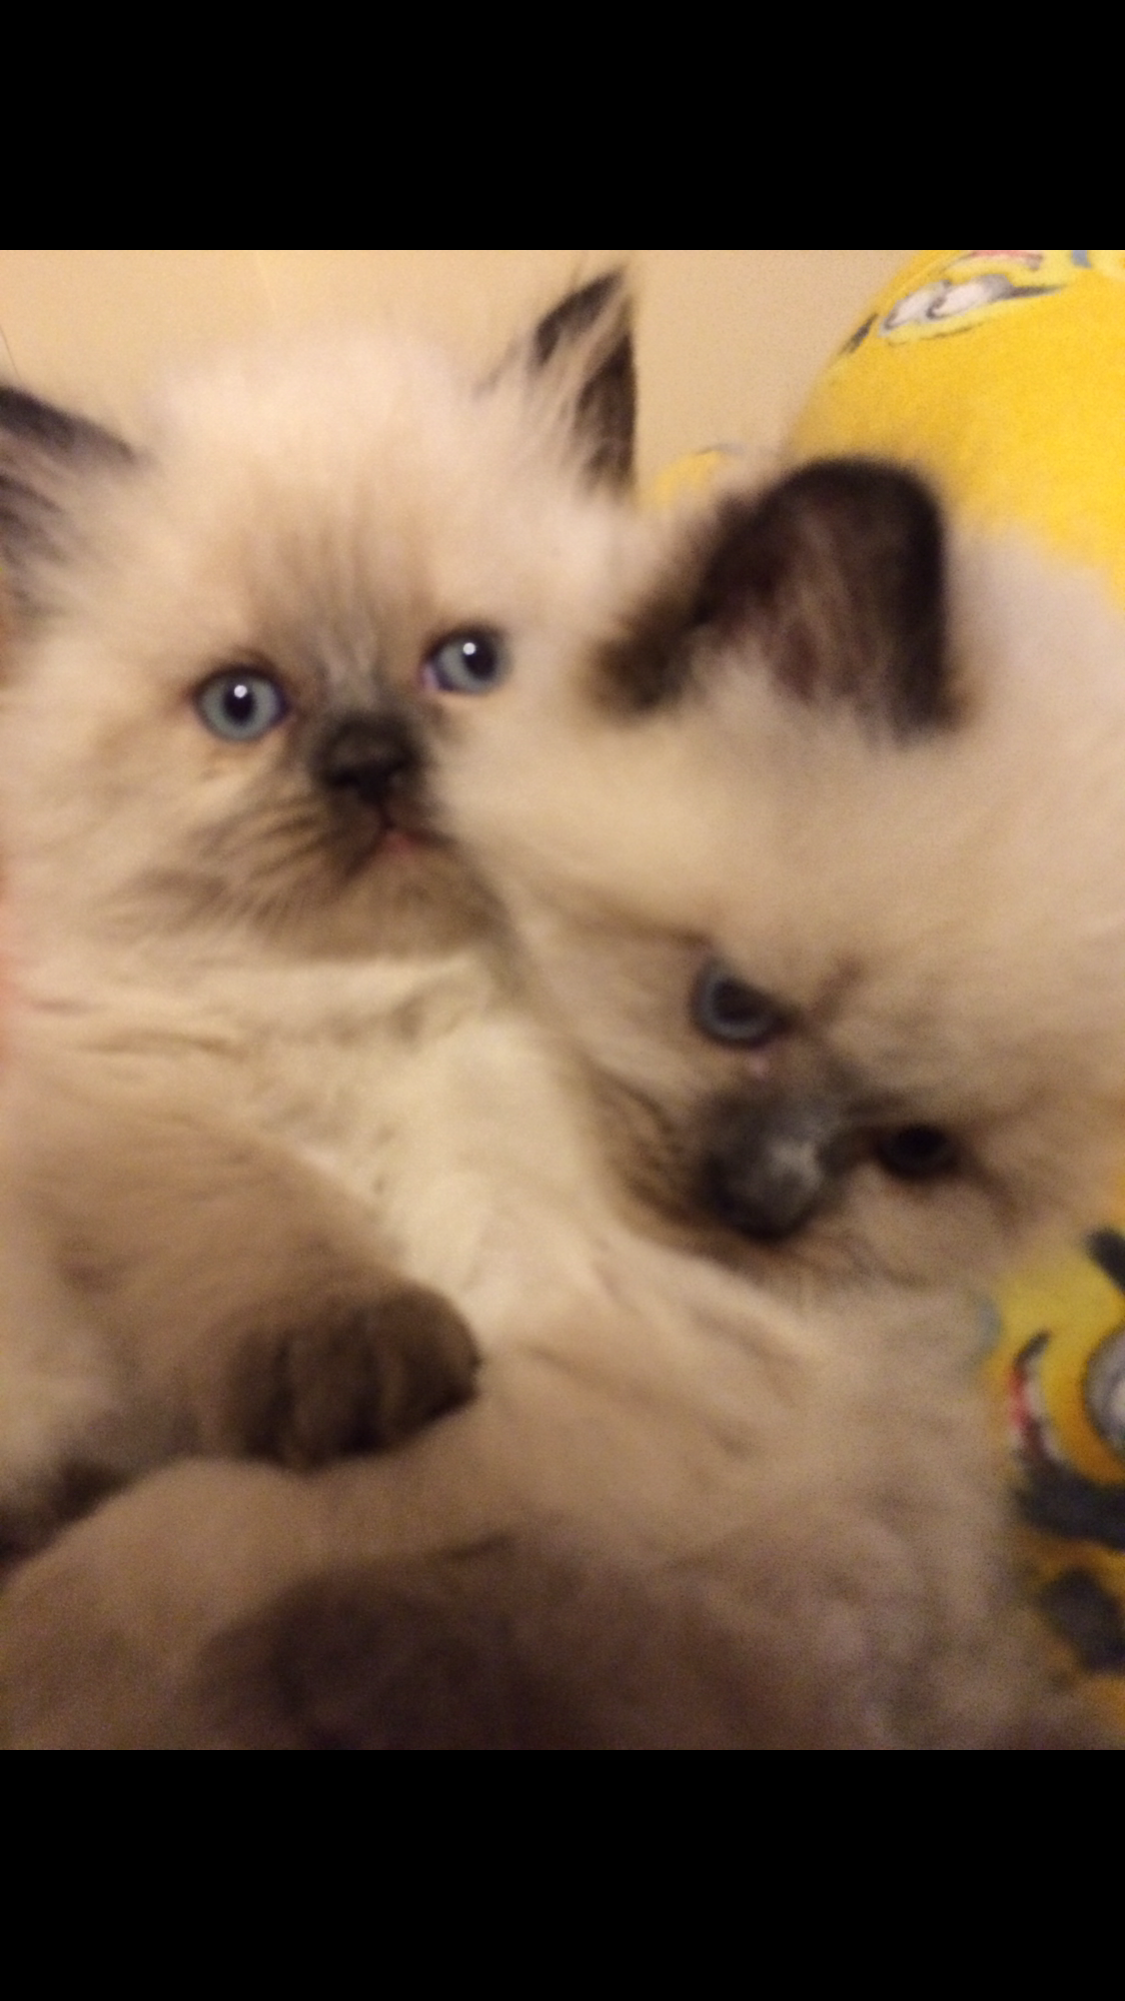 Himalayan Kittens For Sale Www Khloeskittens Com Persian Kittens Himalayan Kittens For Sale Kittens